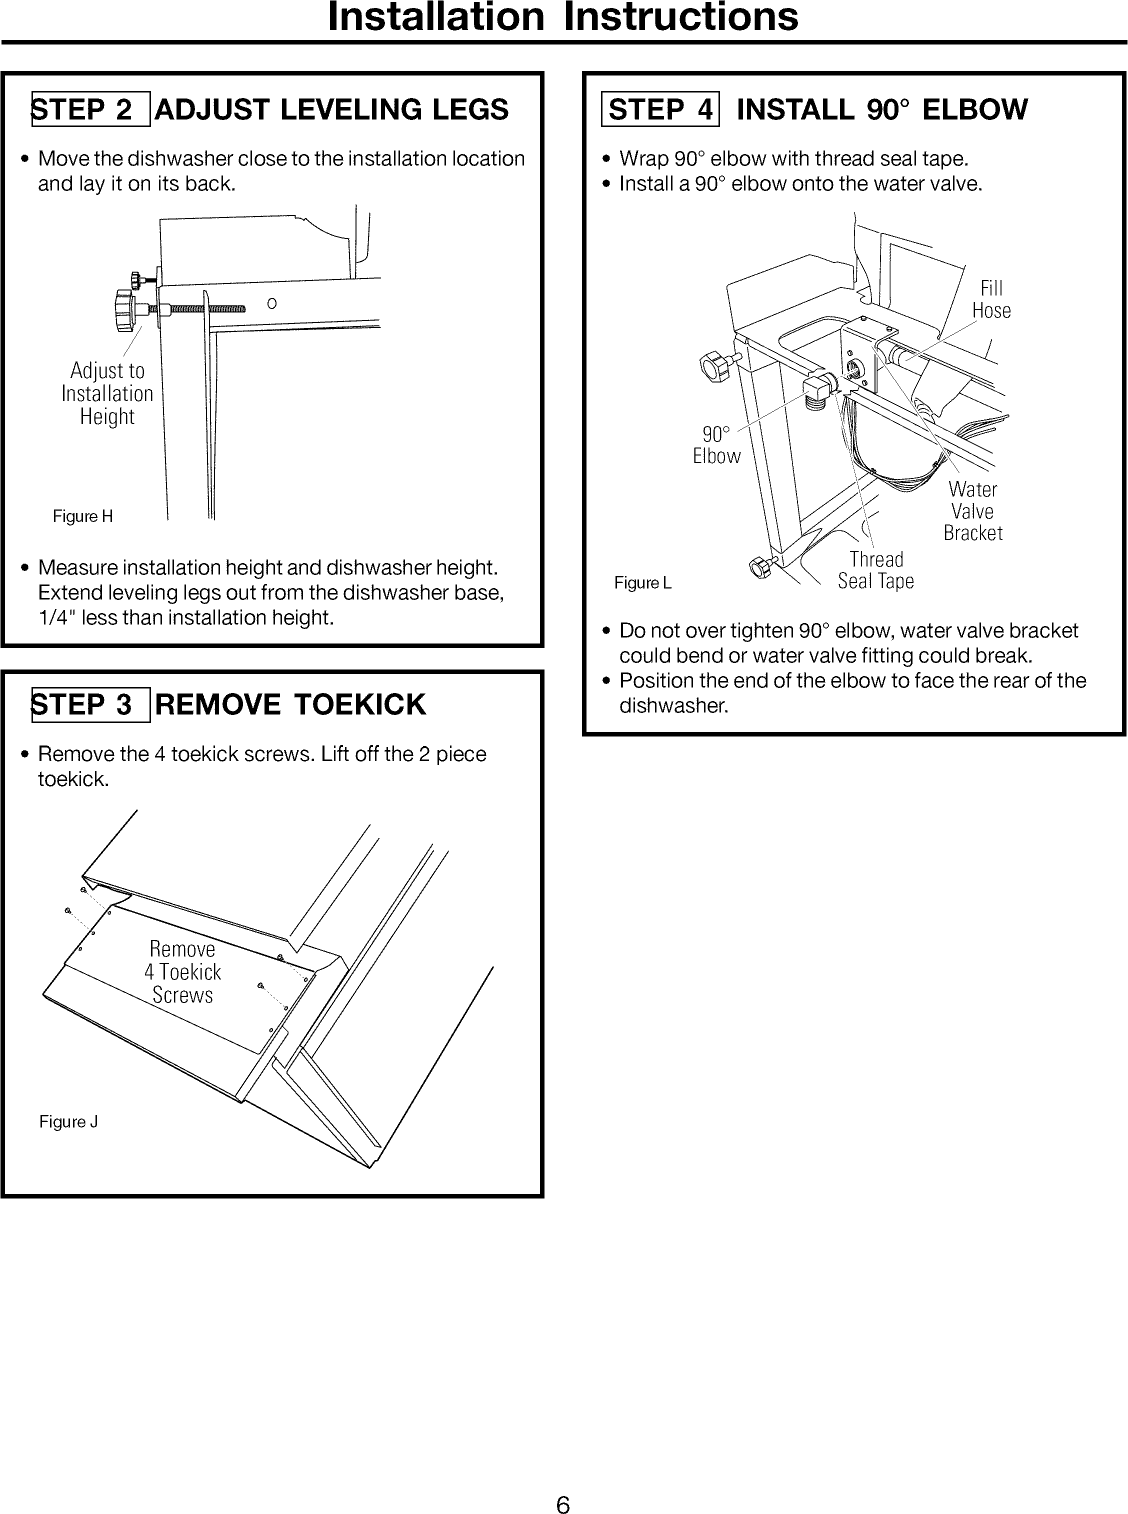 Frigidaire Ffbd1821ms1b User Manual Dishwasher Manuals And Guides Valve Wiring Diagram Page 6 Of 12 1108343l